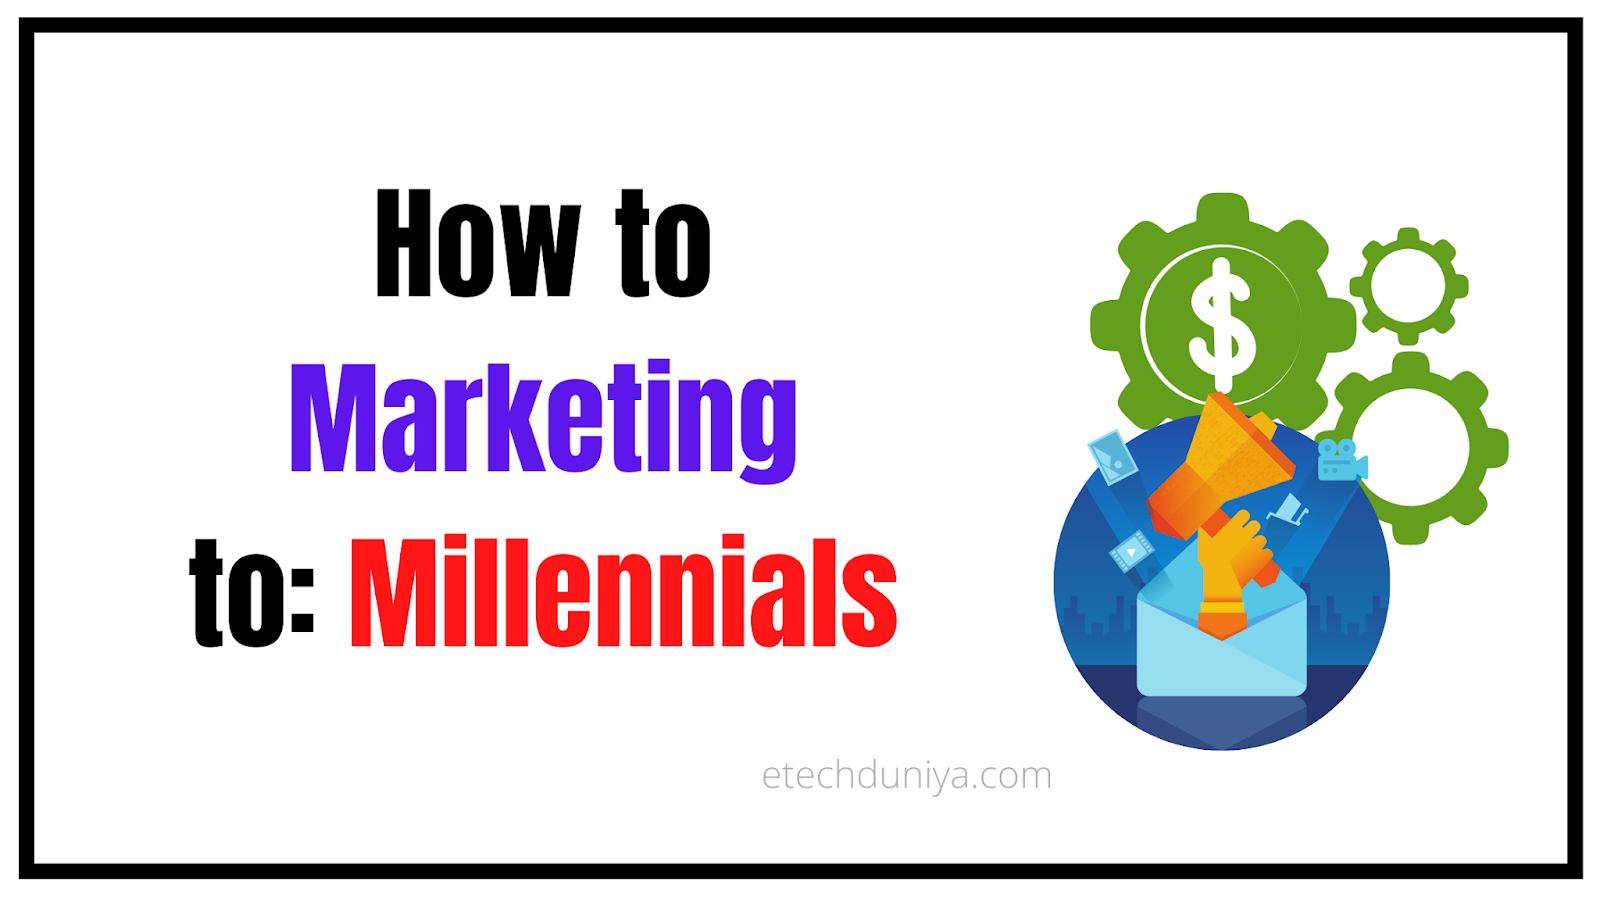 How To Marketing To: Millennials